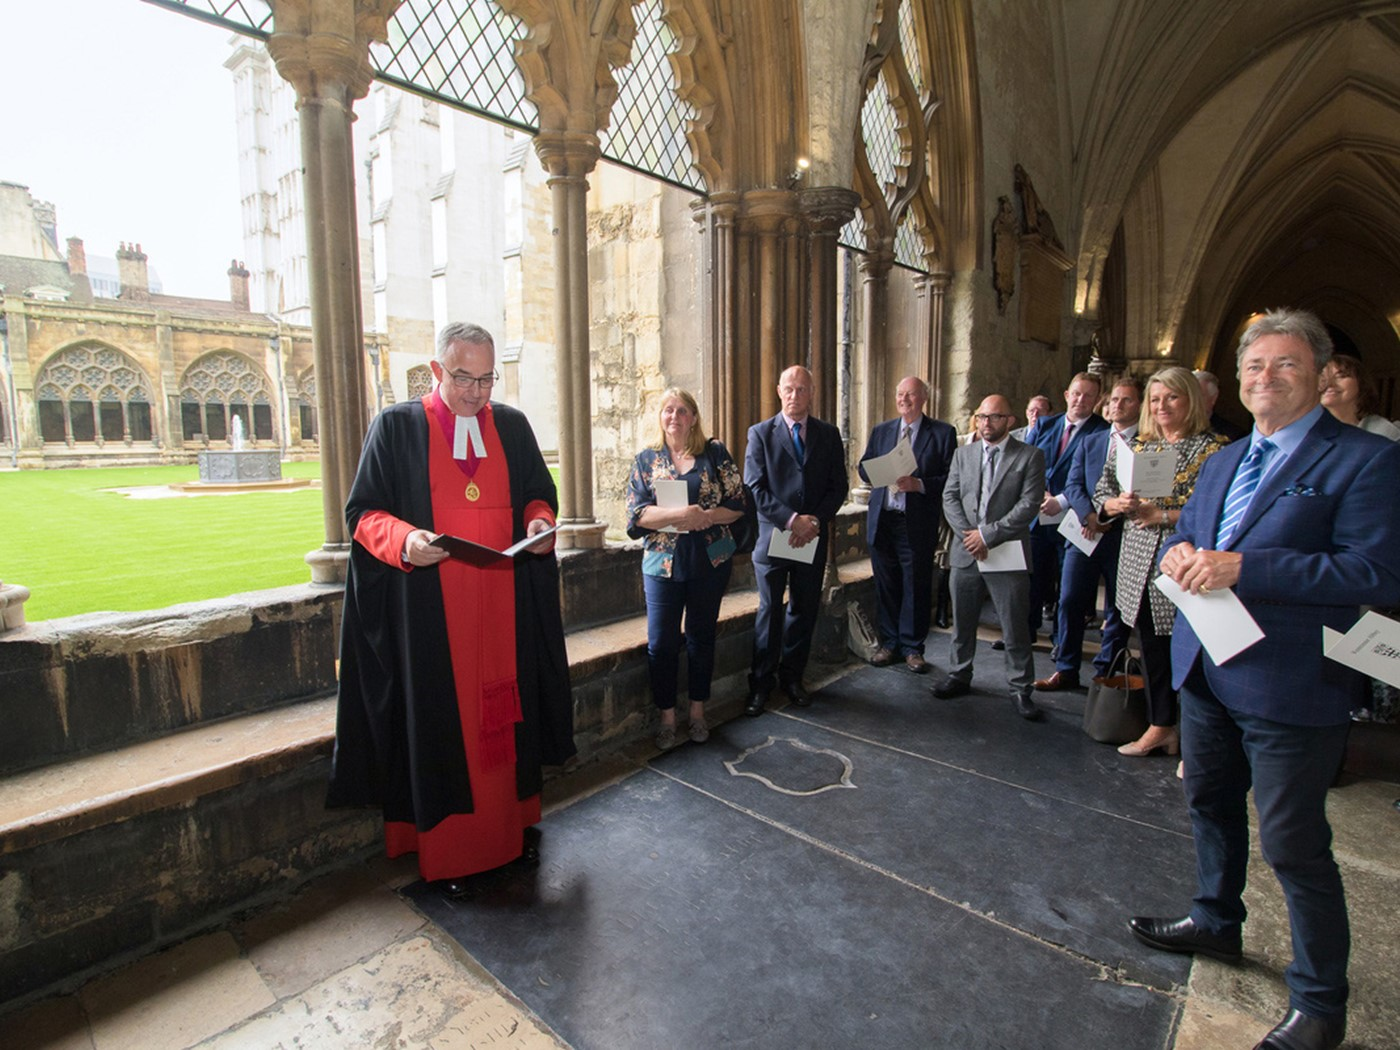 The Dean of Westminster gives the blessing